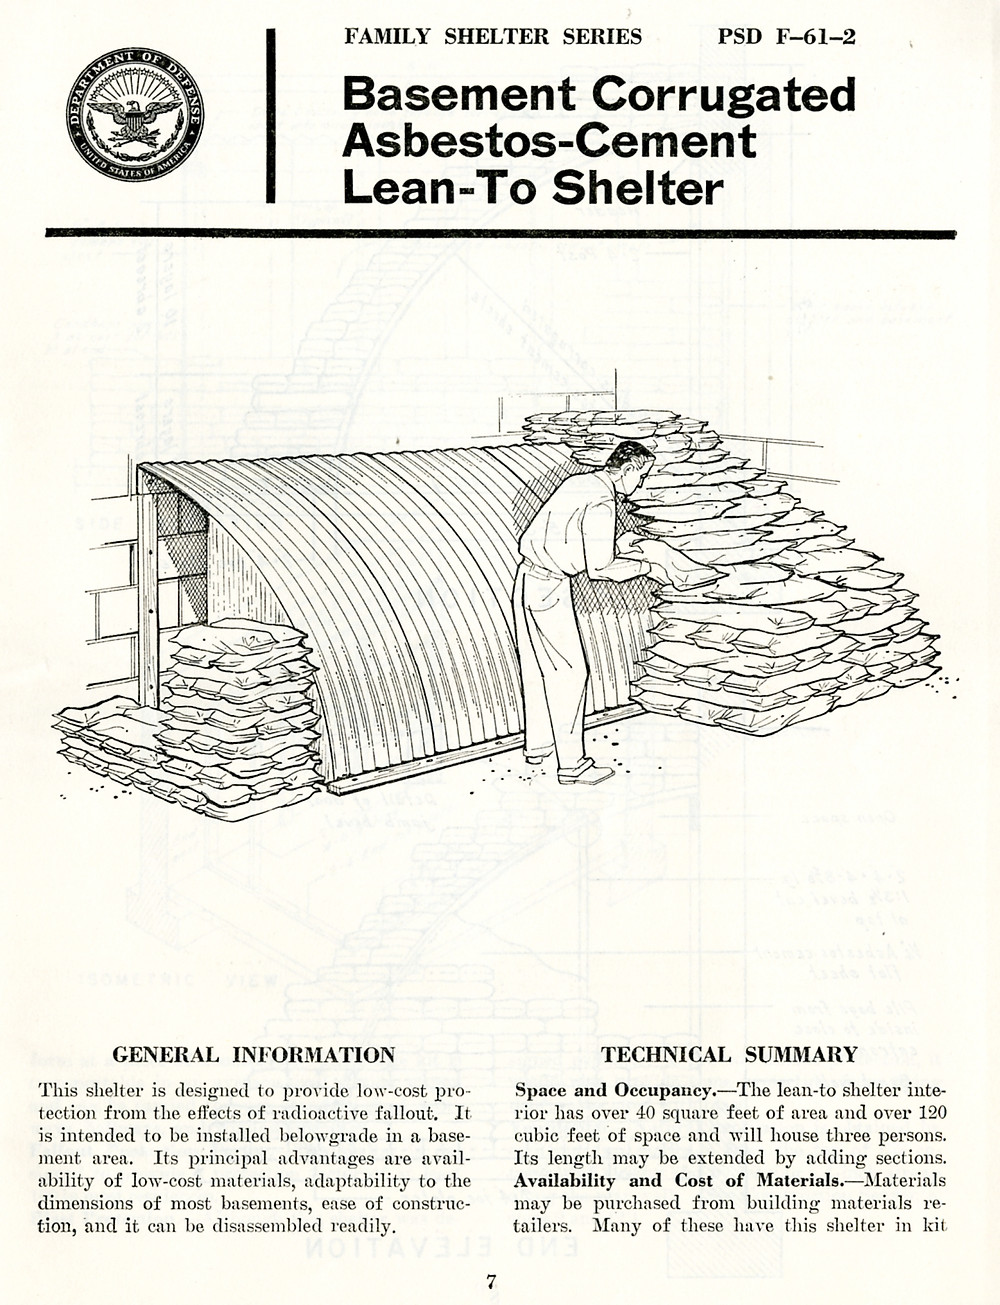 department of defense - family shelter series